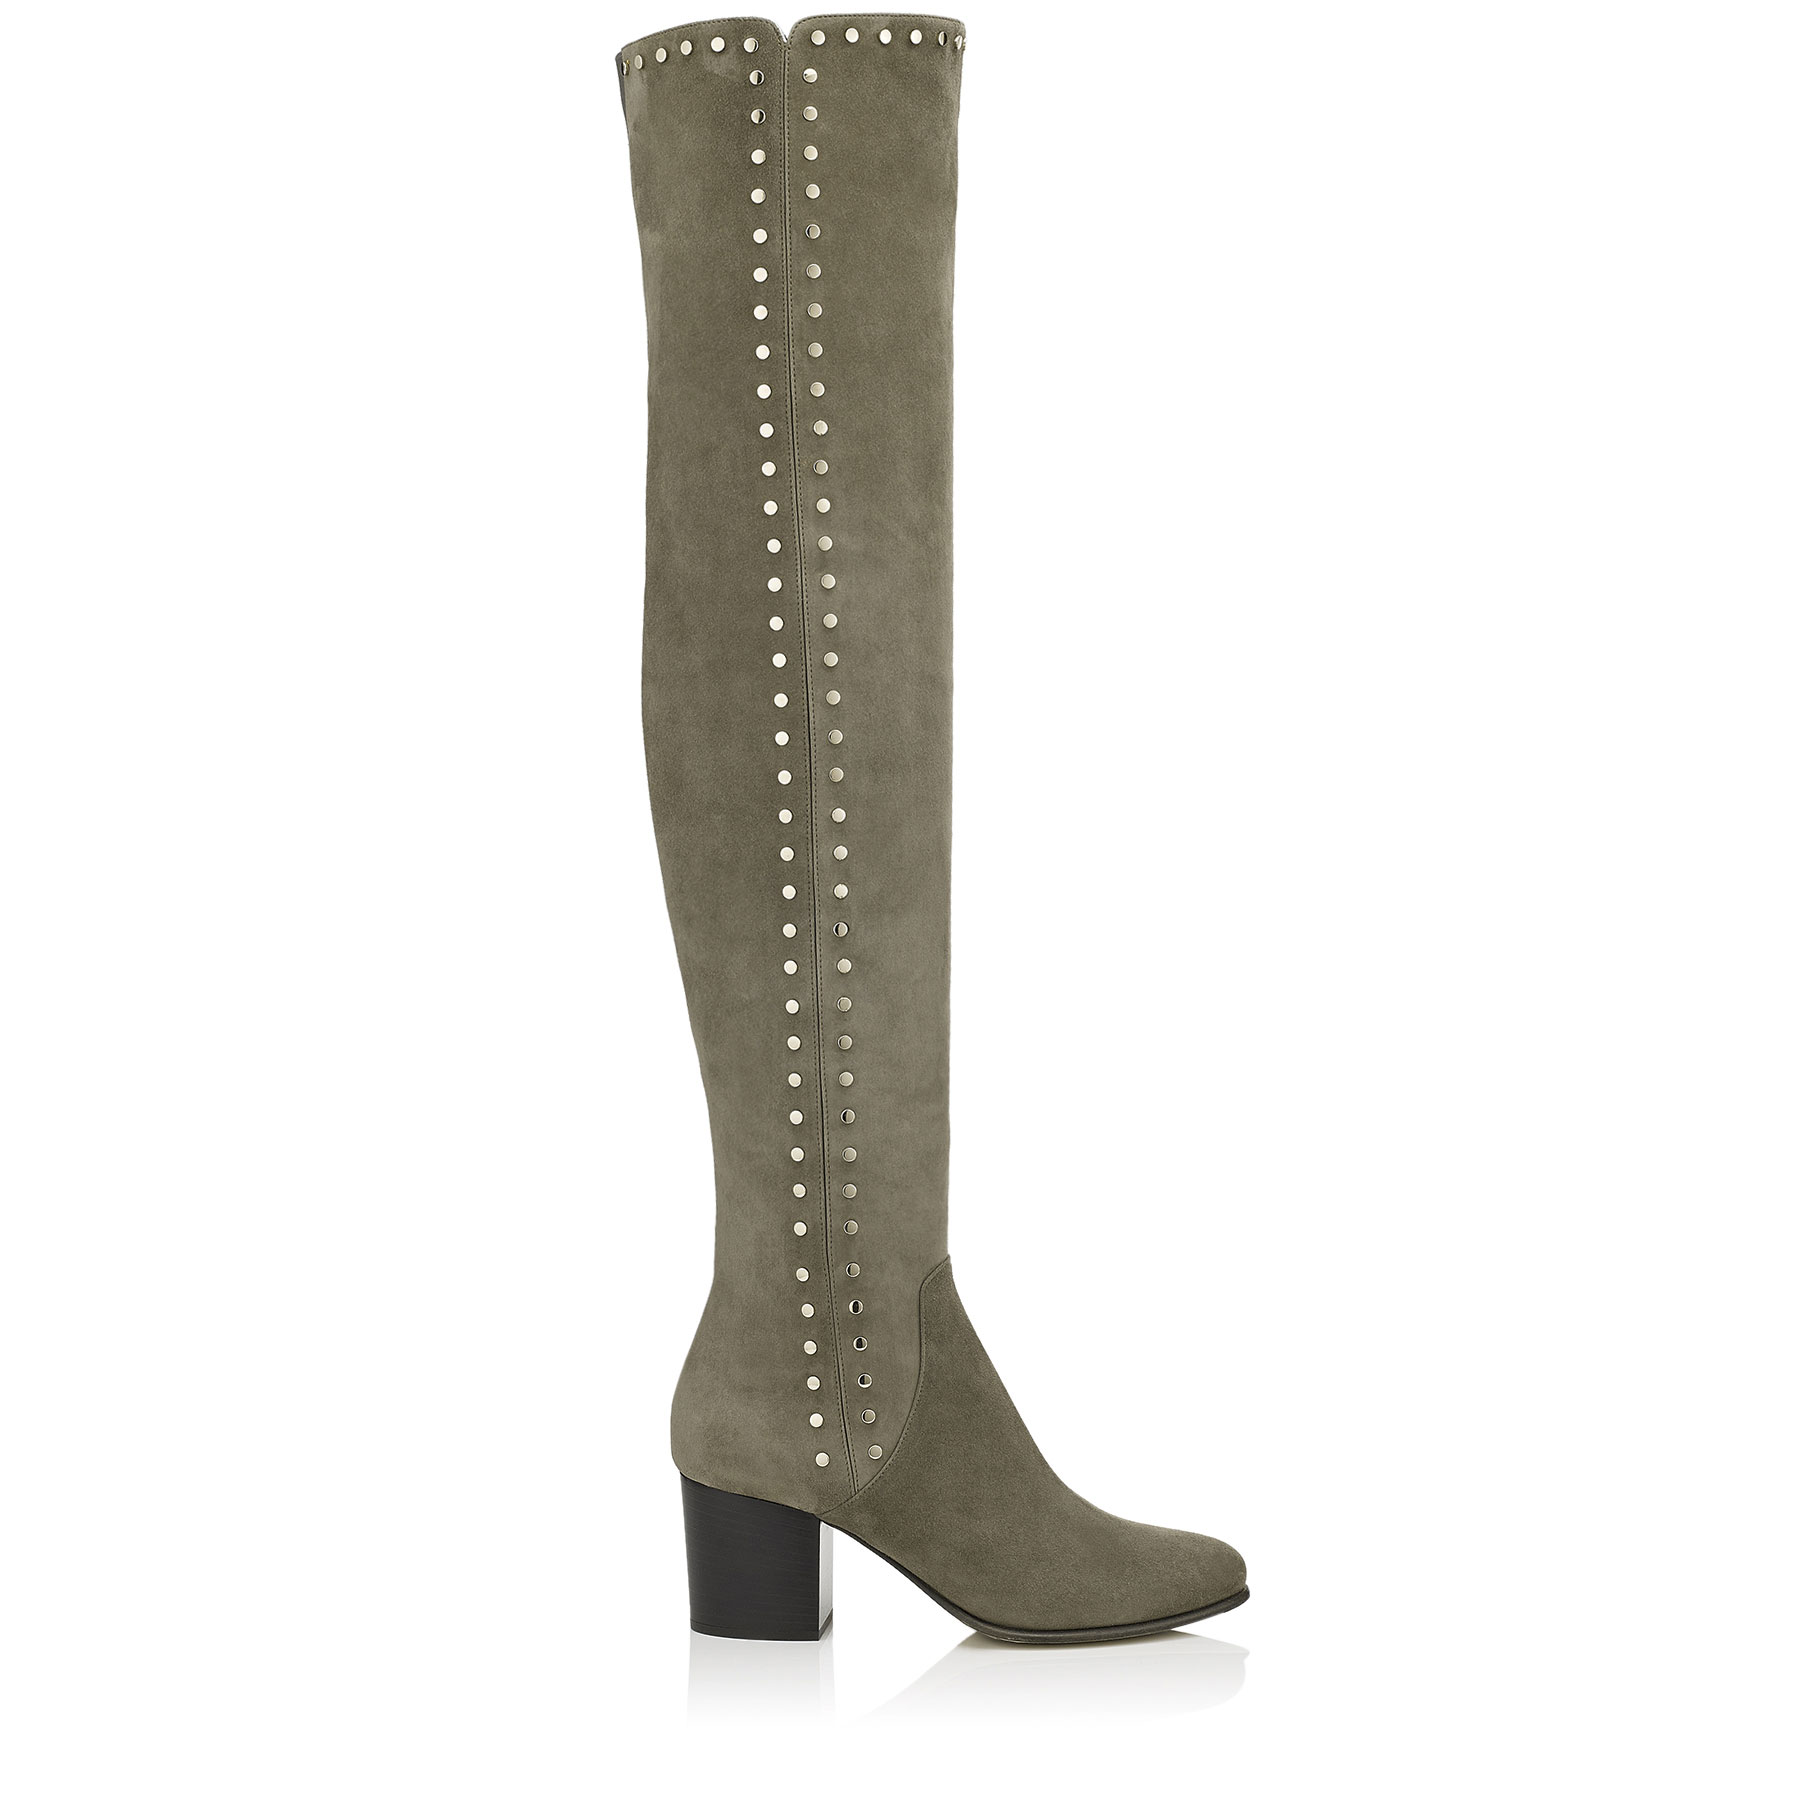 HARLEM 65 Mink Suede Over The Knee Boots with Studded Trim by Jimmy Choo